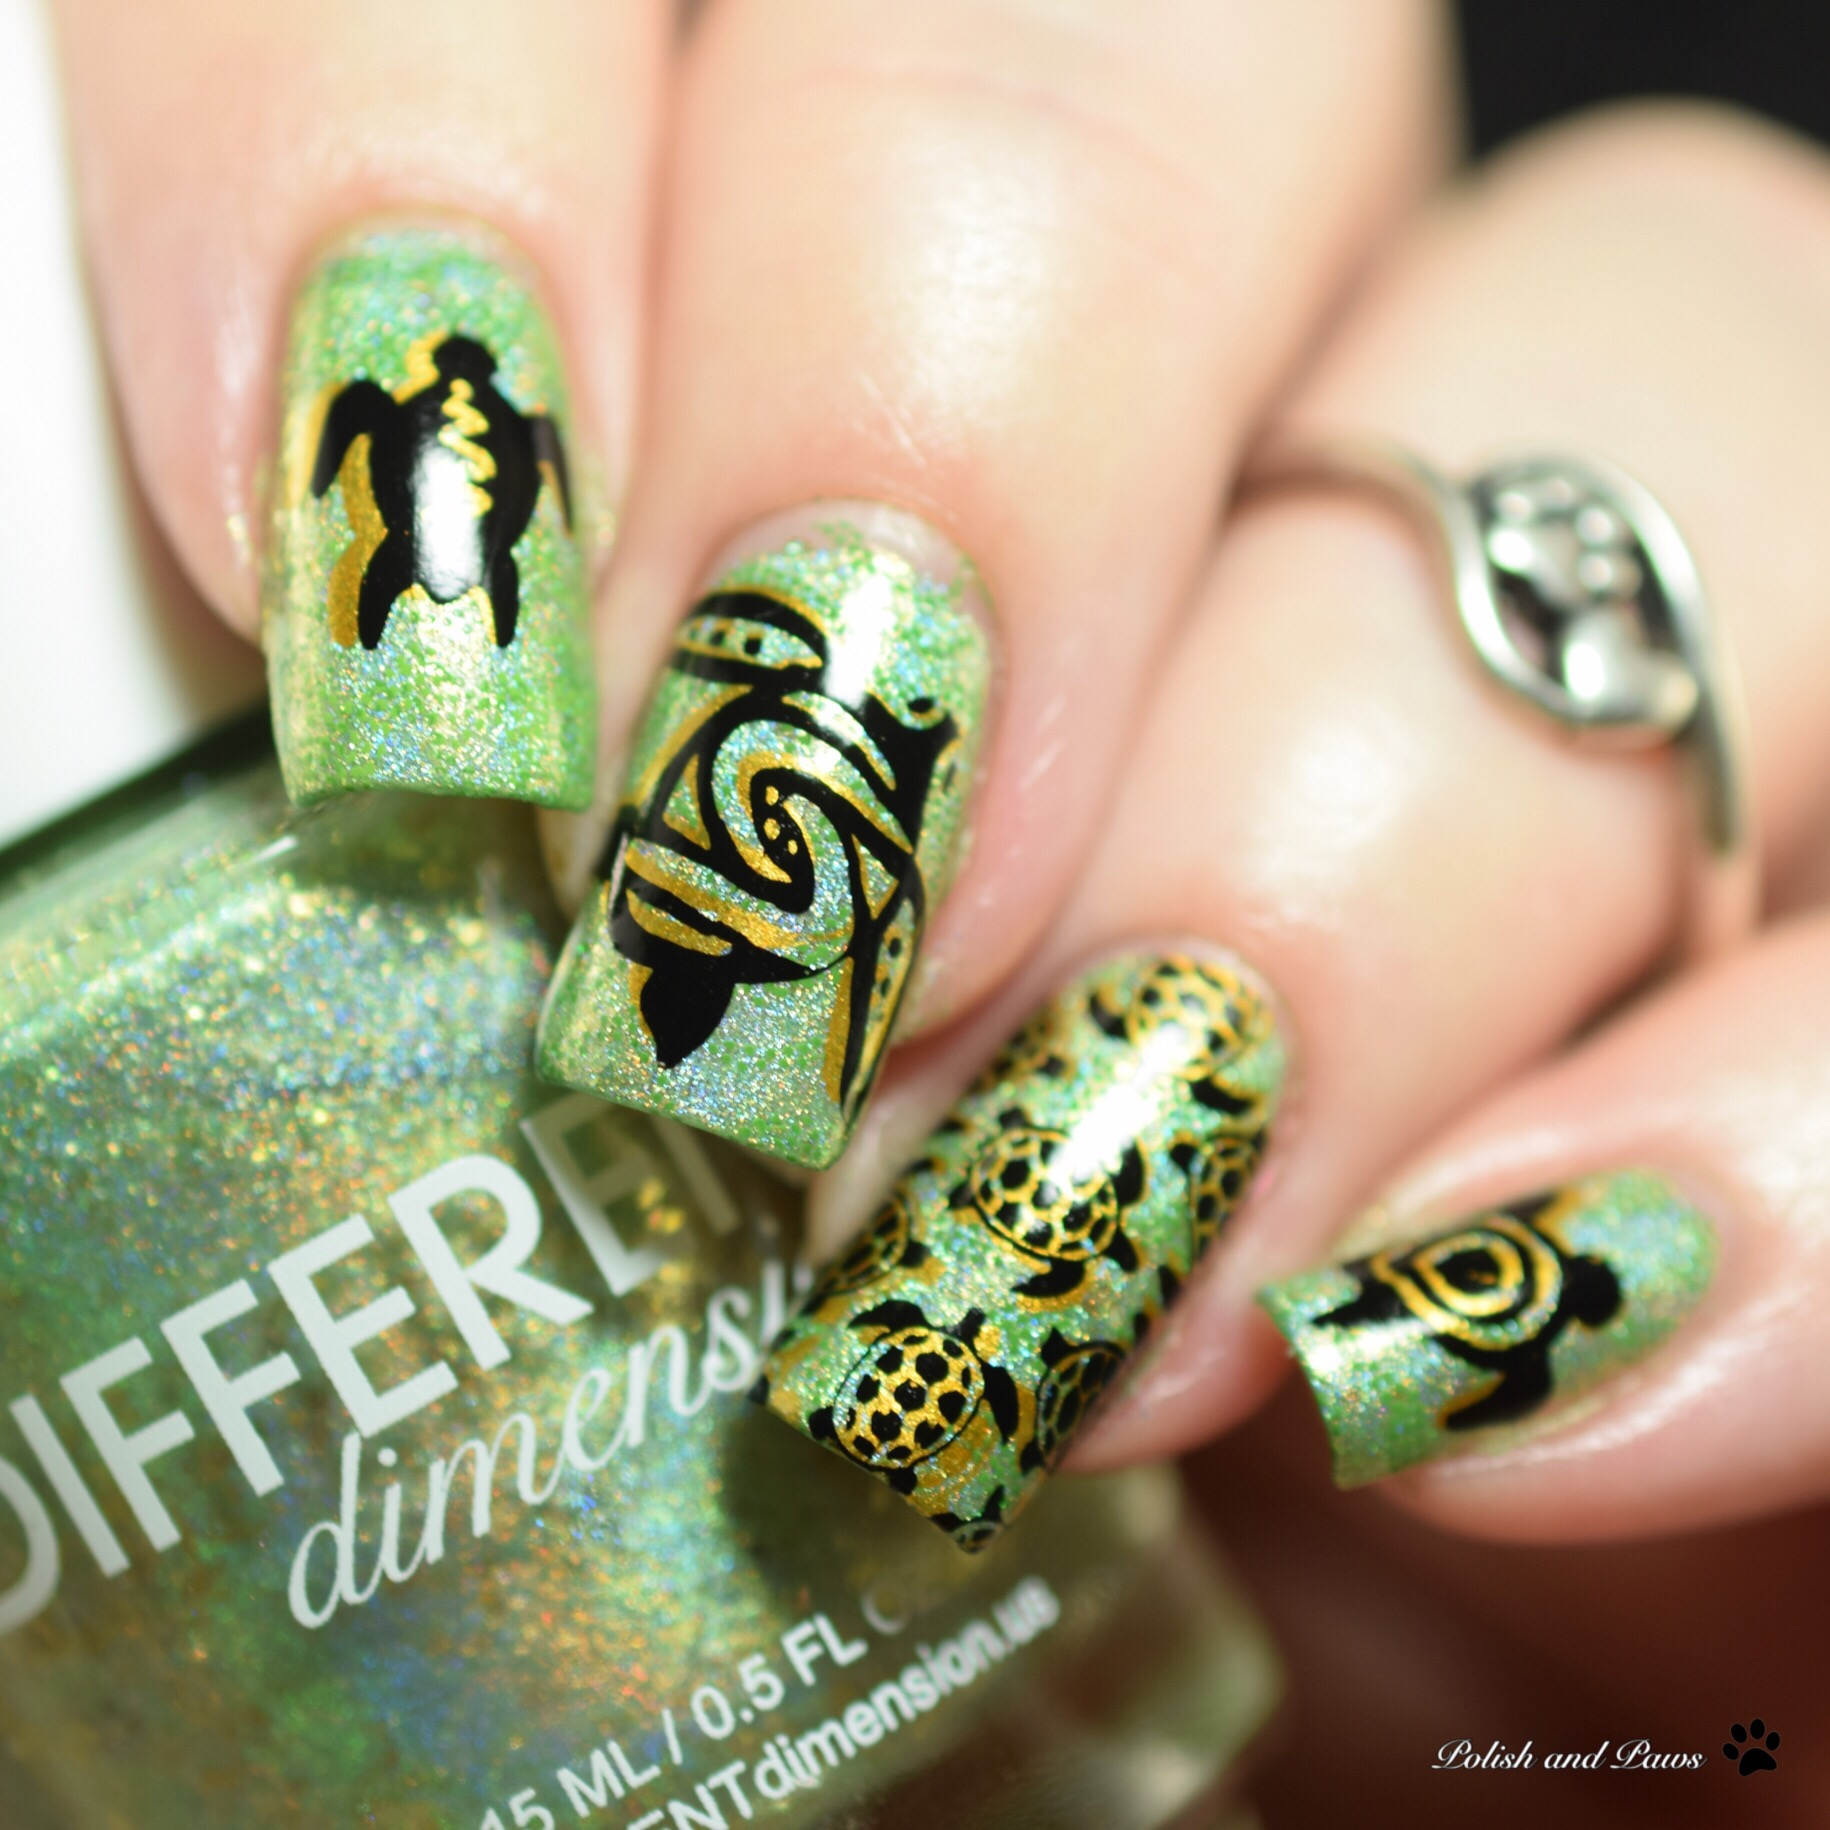 World Turtle Day Nail Art | Polish and Paws